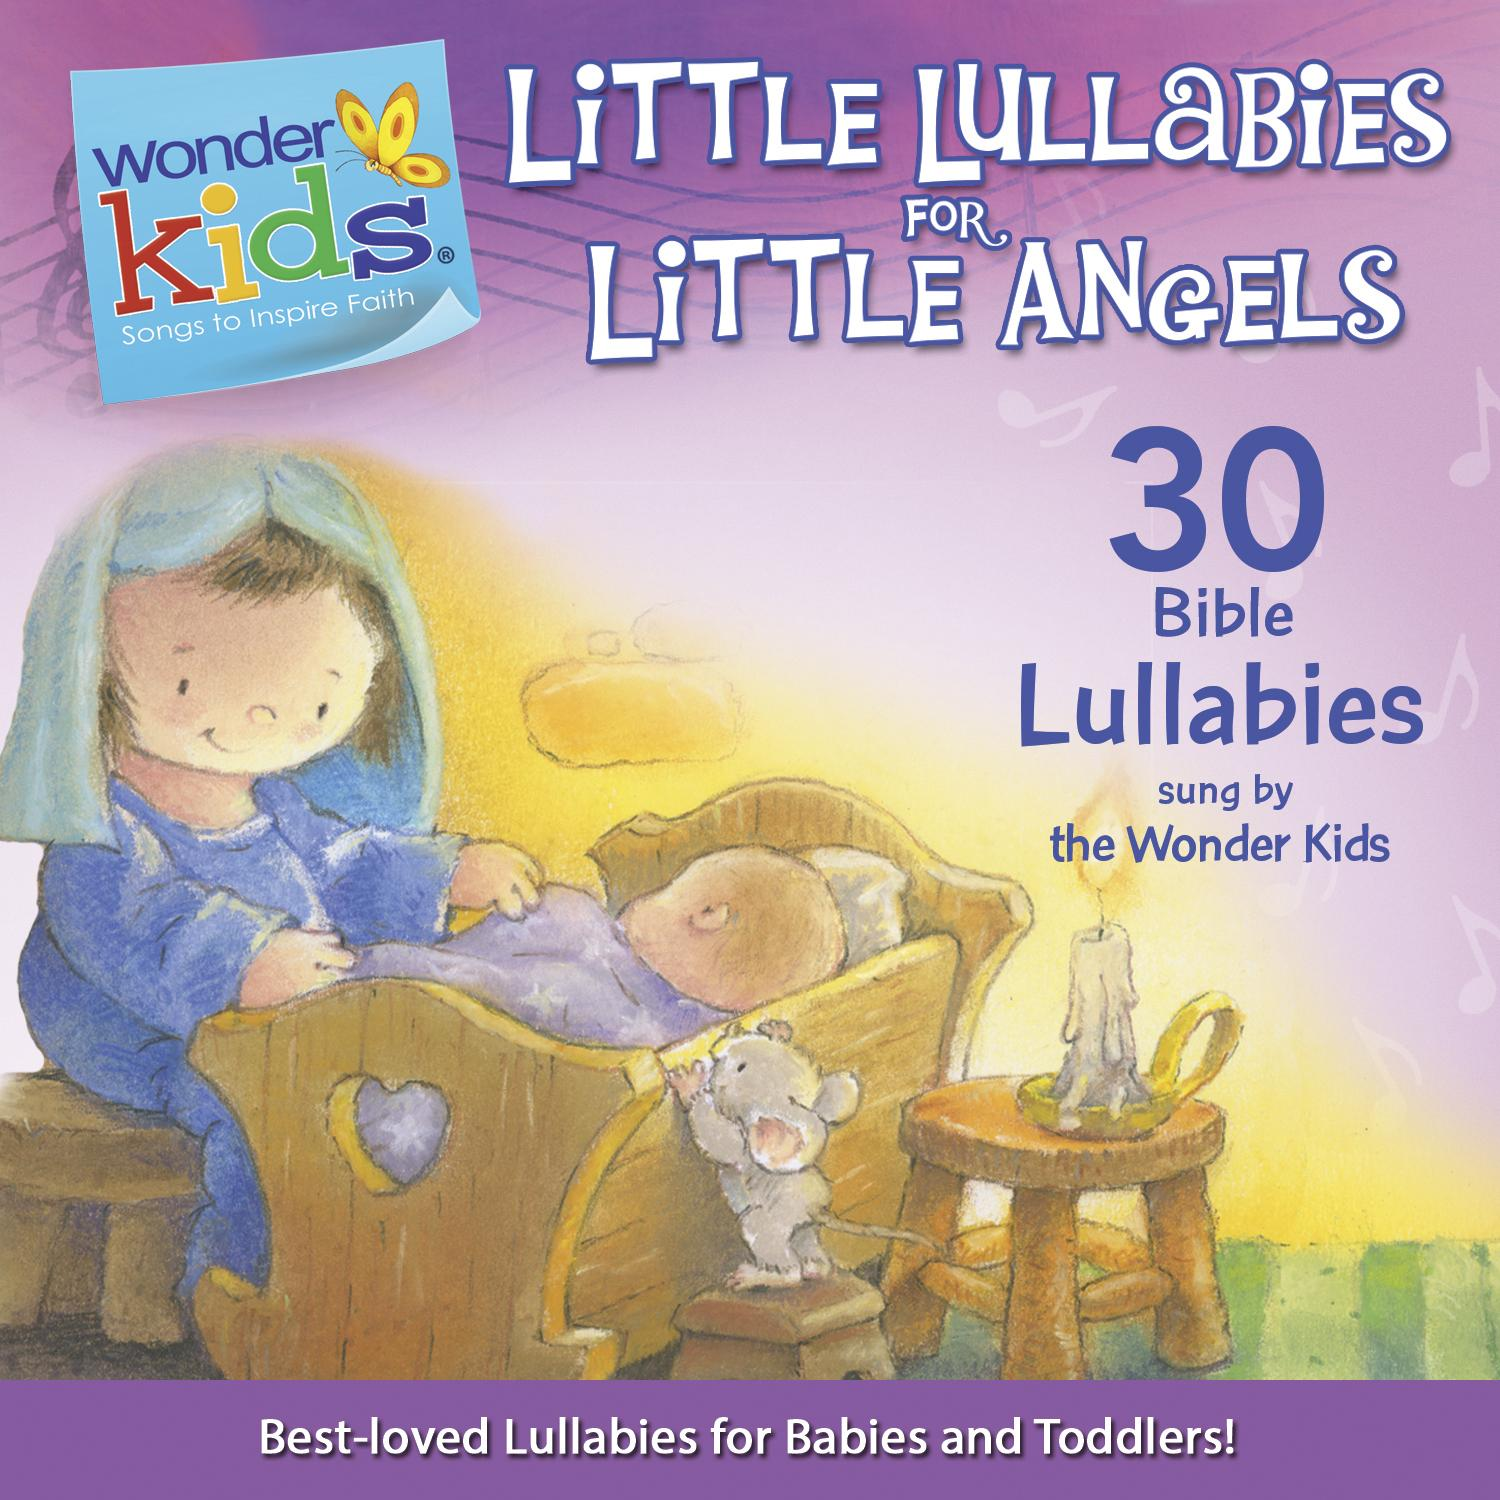 Wonder Kids: Little Lullabies for Little Angels (Audiobook)